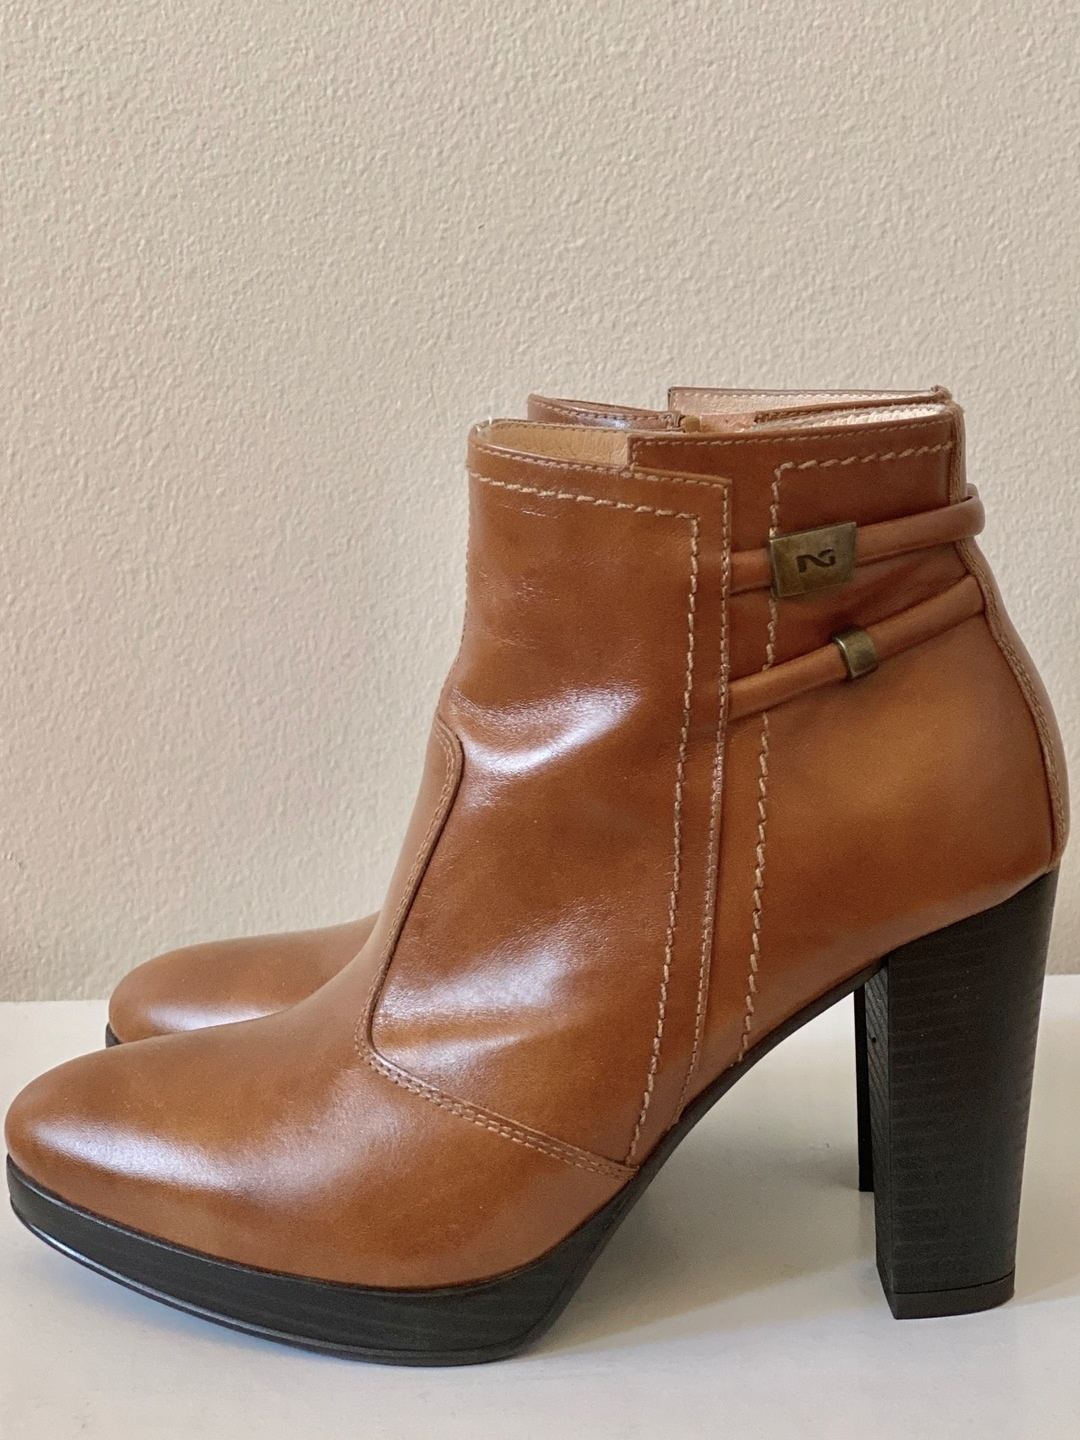 Women's boots - NERO GIARDINI photo 1